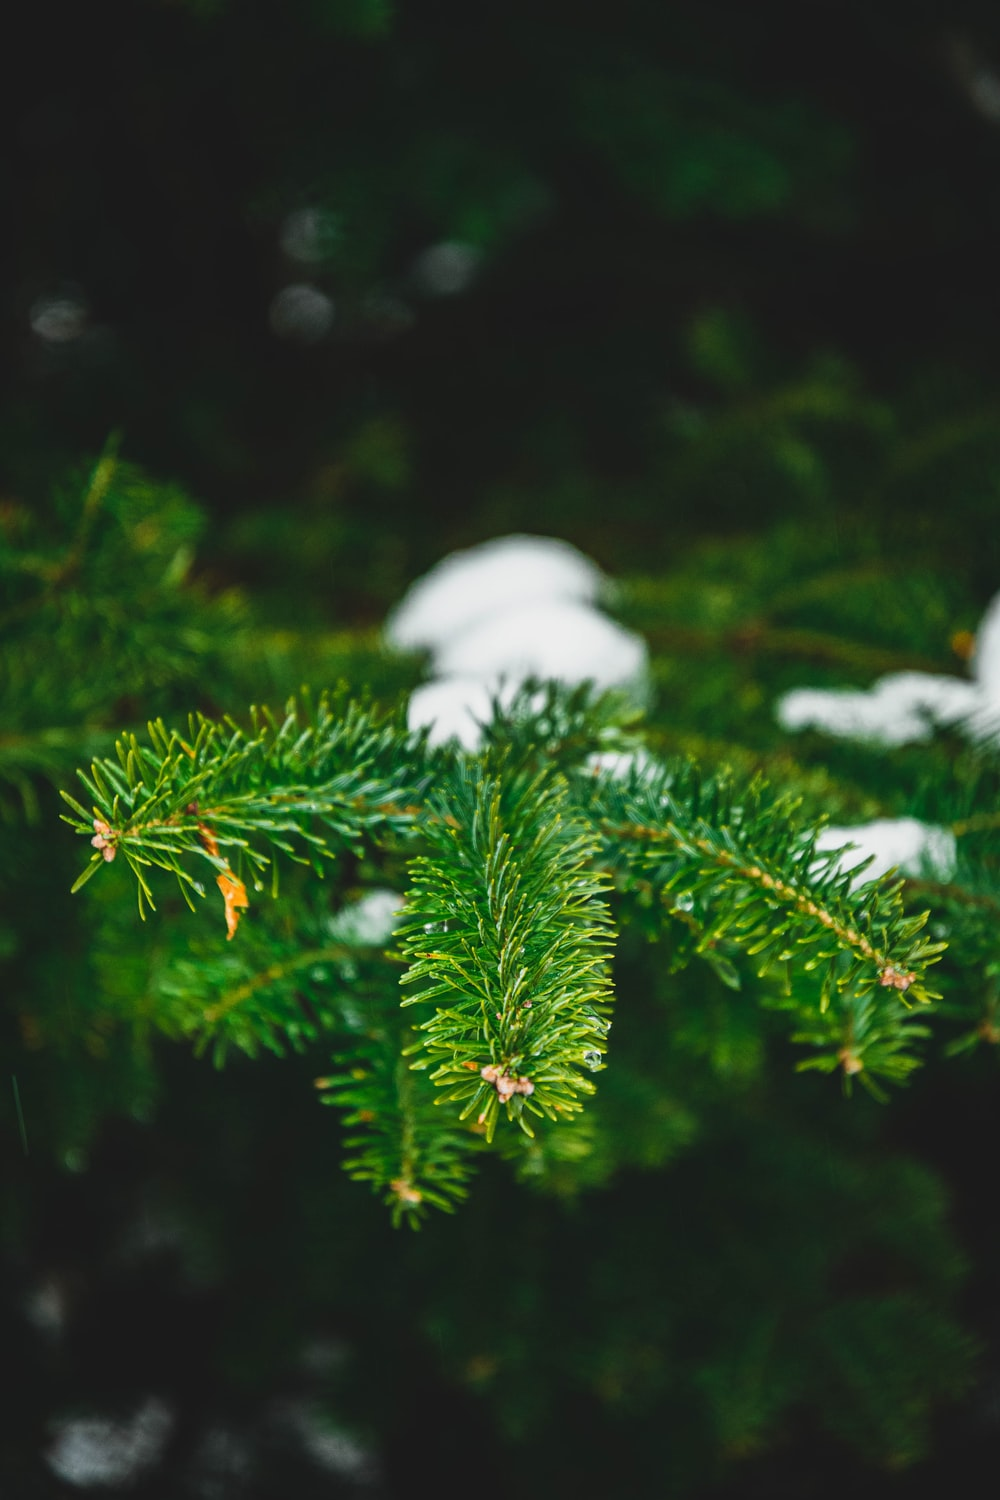 green pine tree with white snow